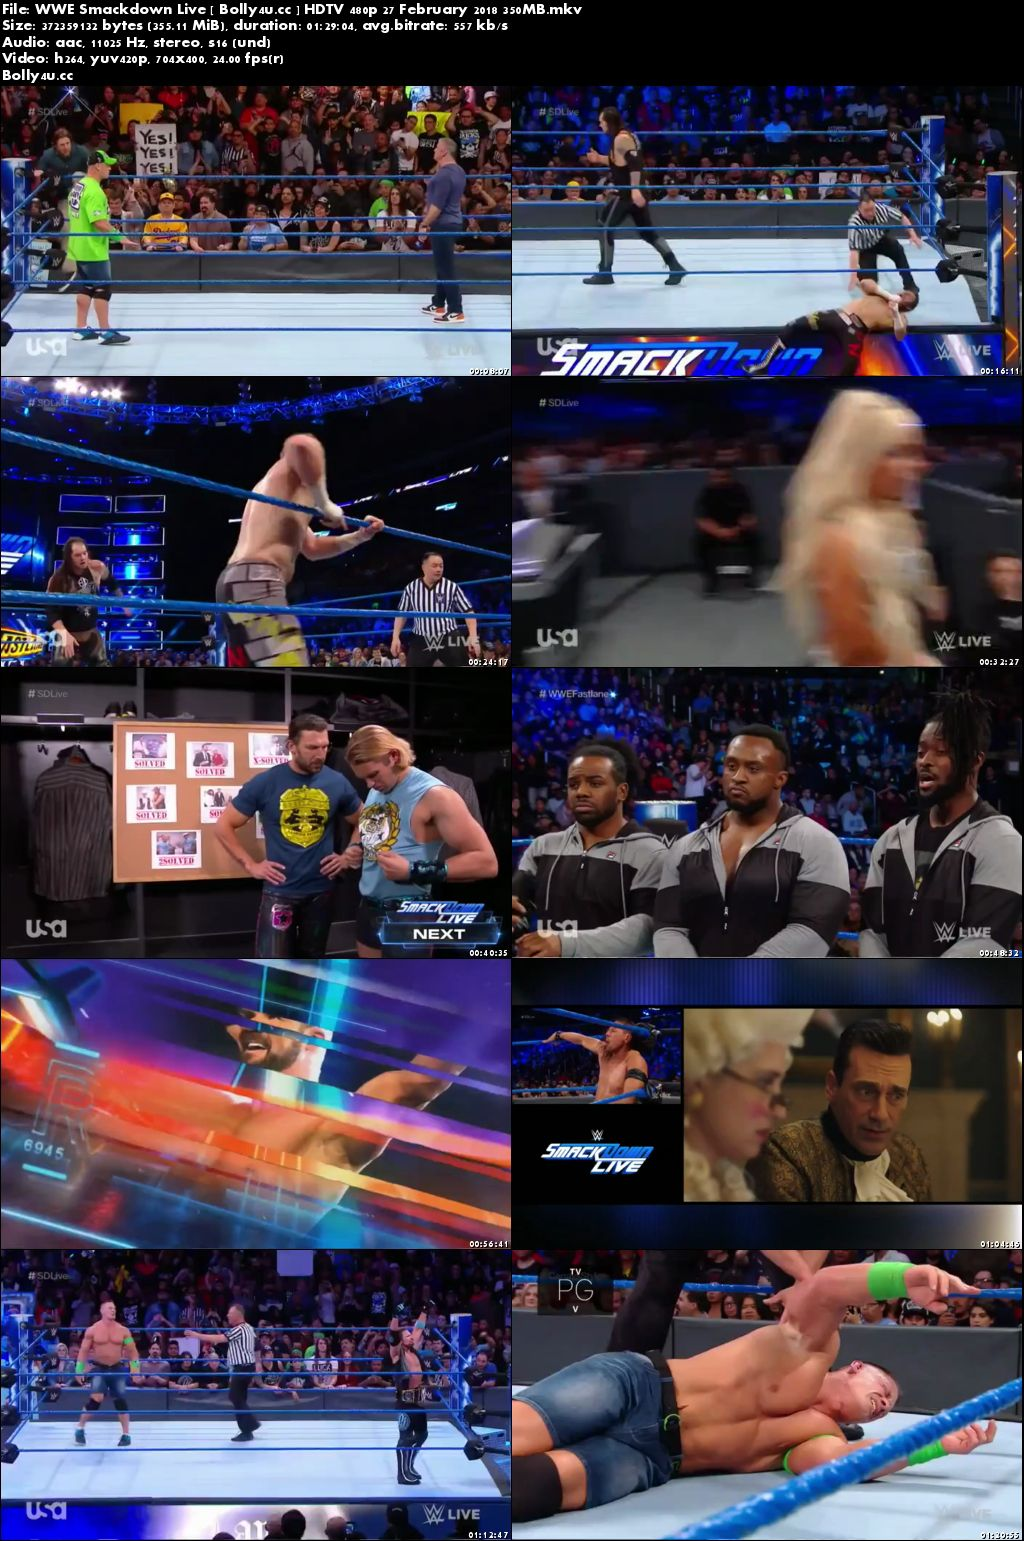 WWE Smackdown Live HDTV 480p 350MB 27 February 2018 Download